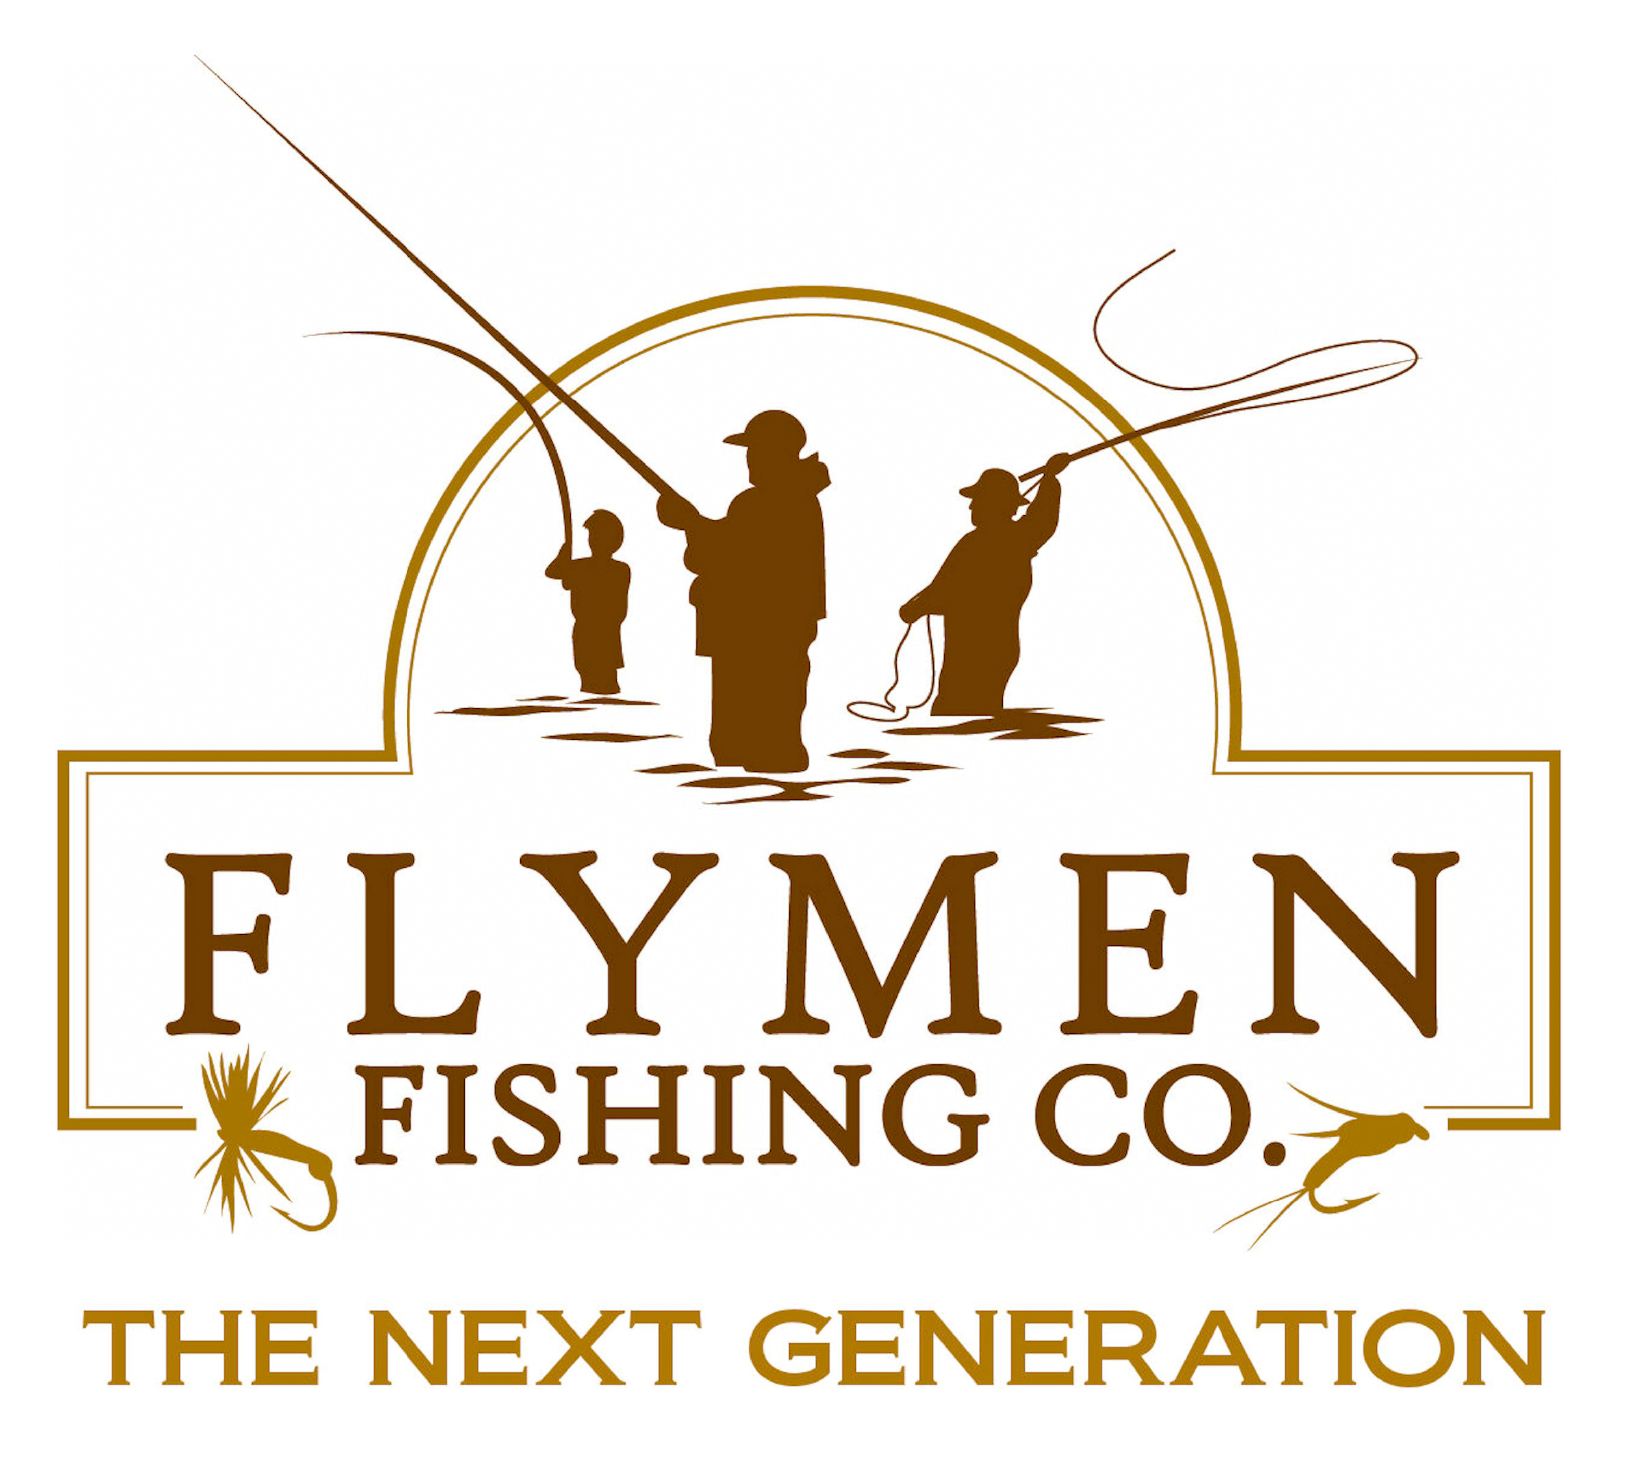 Flyman Fishing Co.